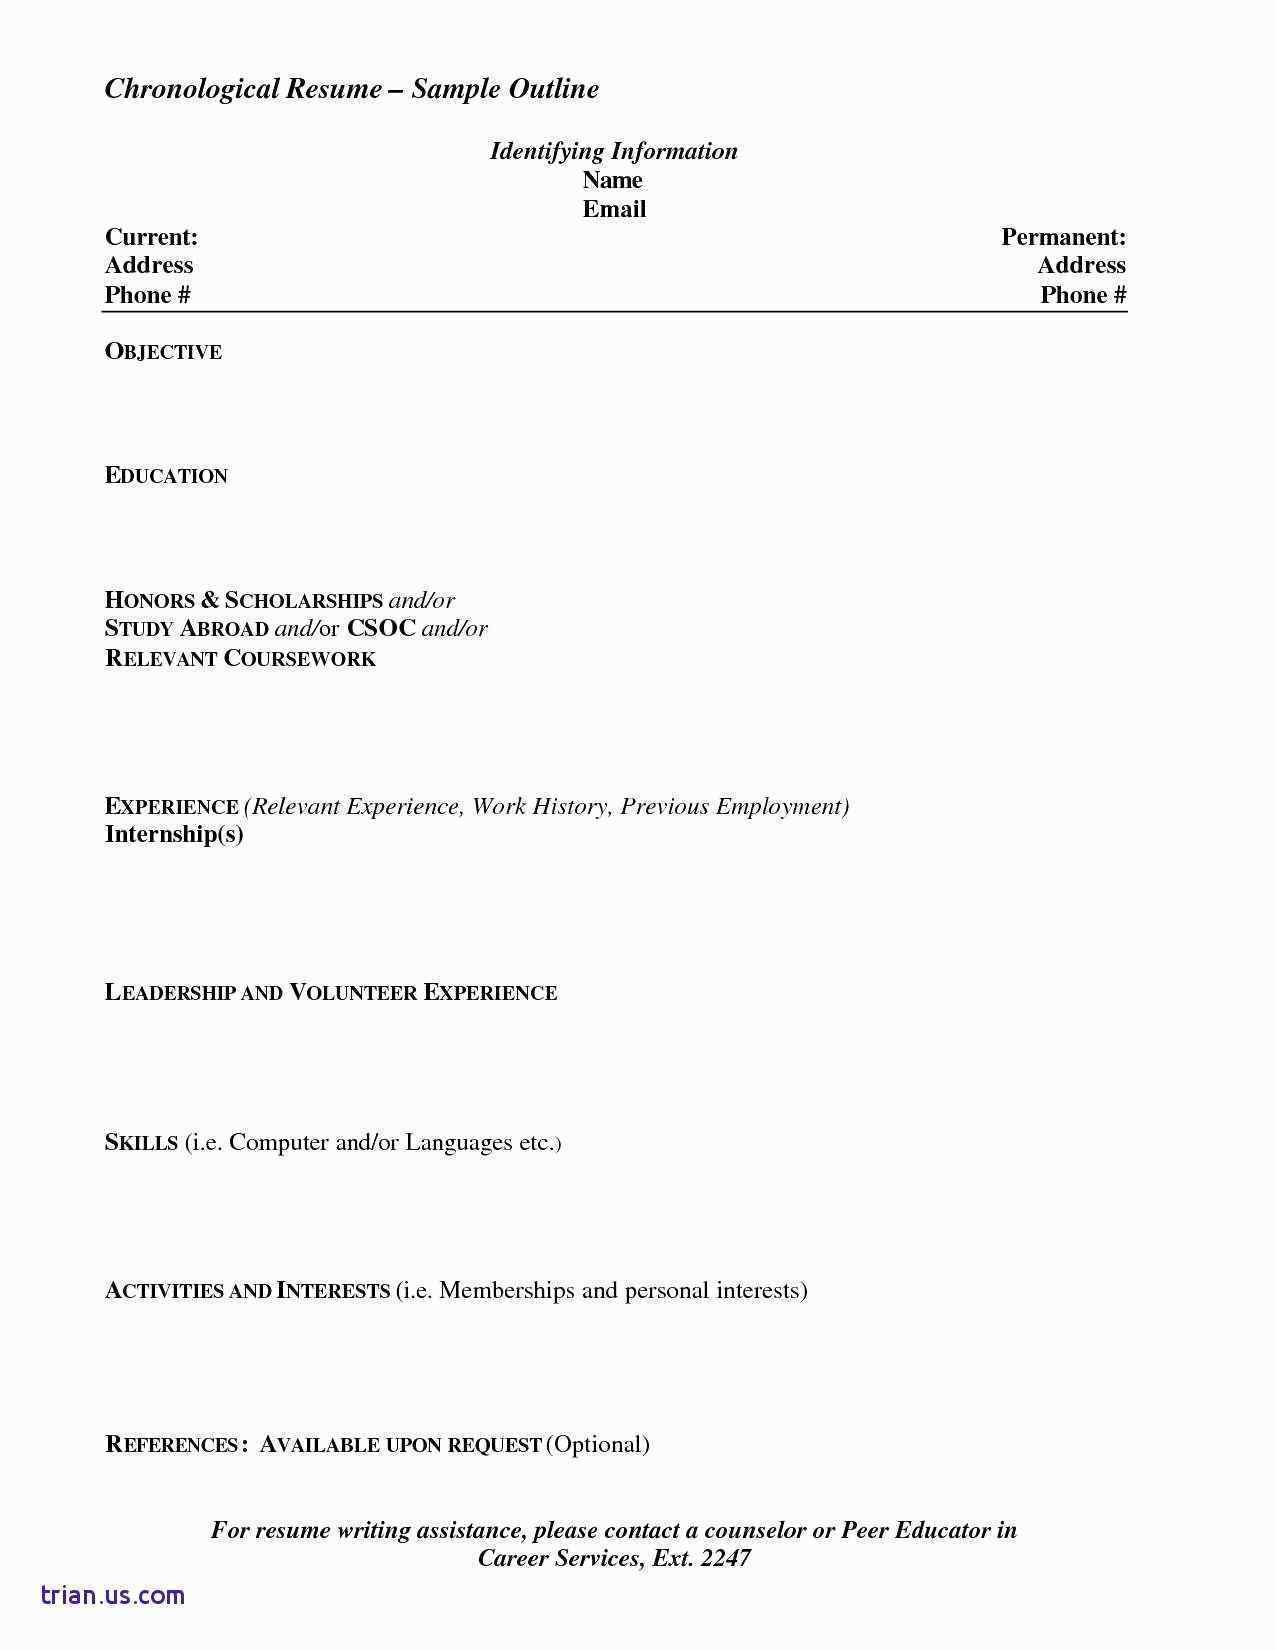 Electrical Engineer Entry Level Resume - Entry Level Electrical Engineering Cover Letter Unique 38 Beautiful